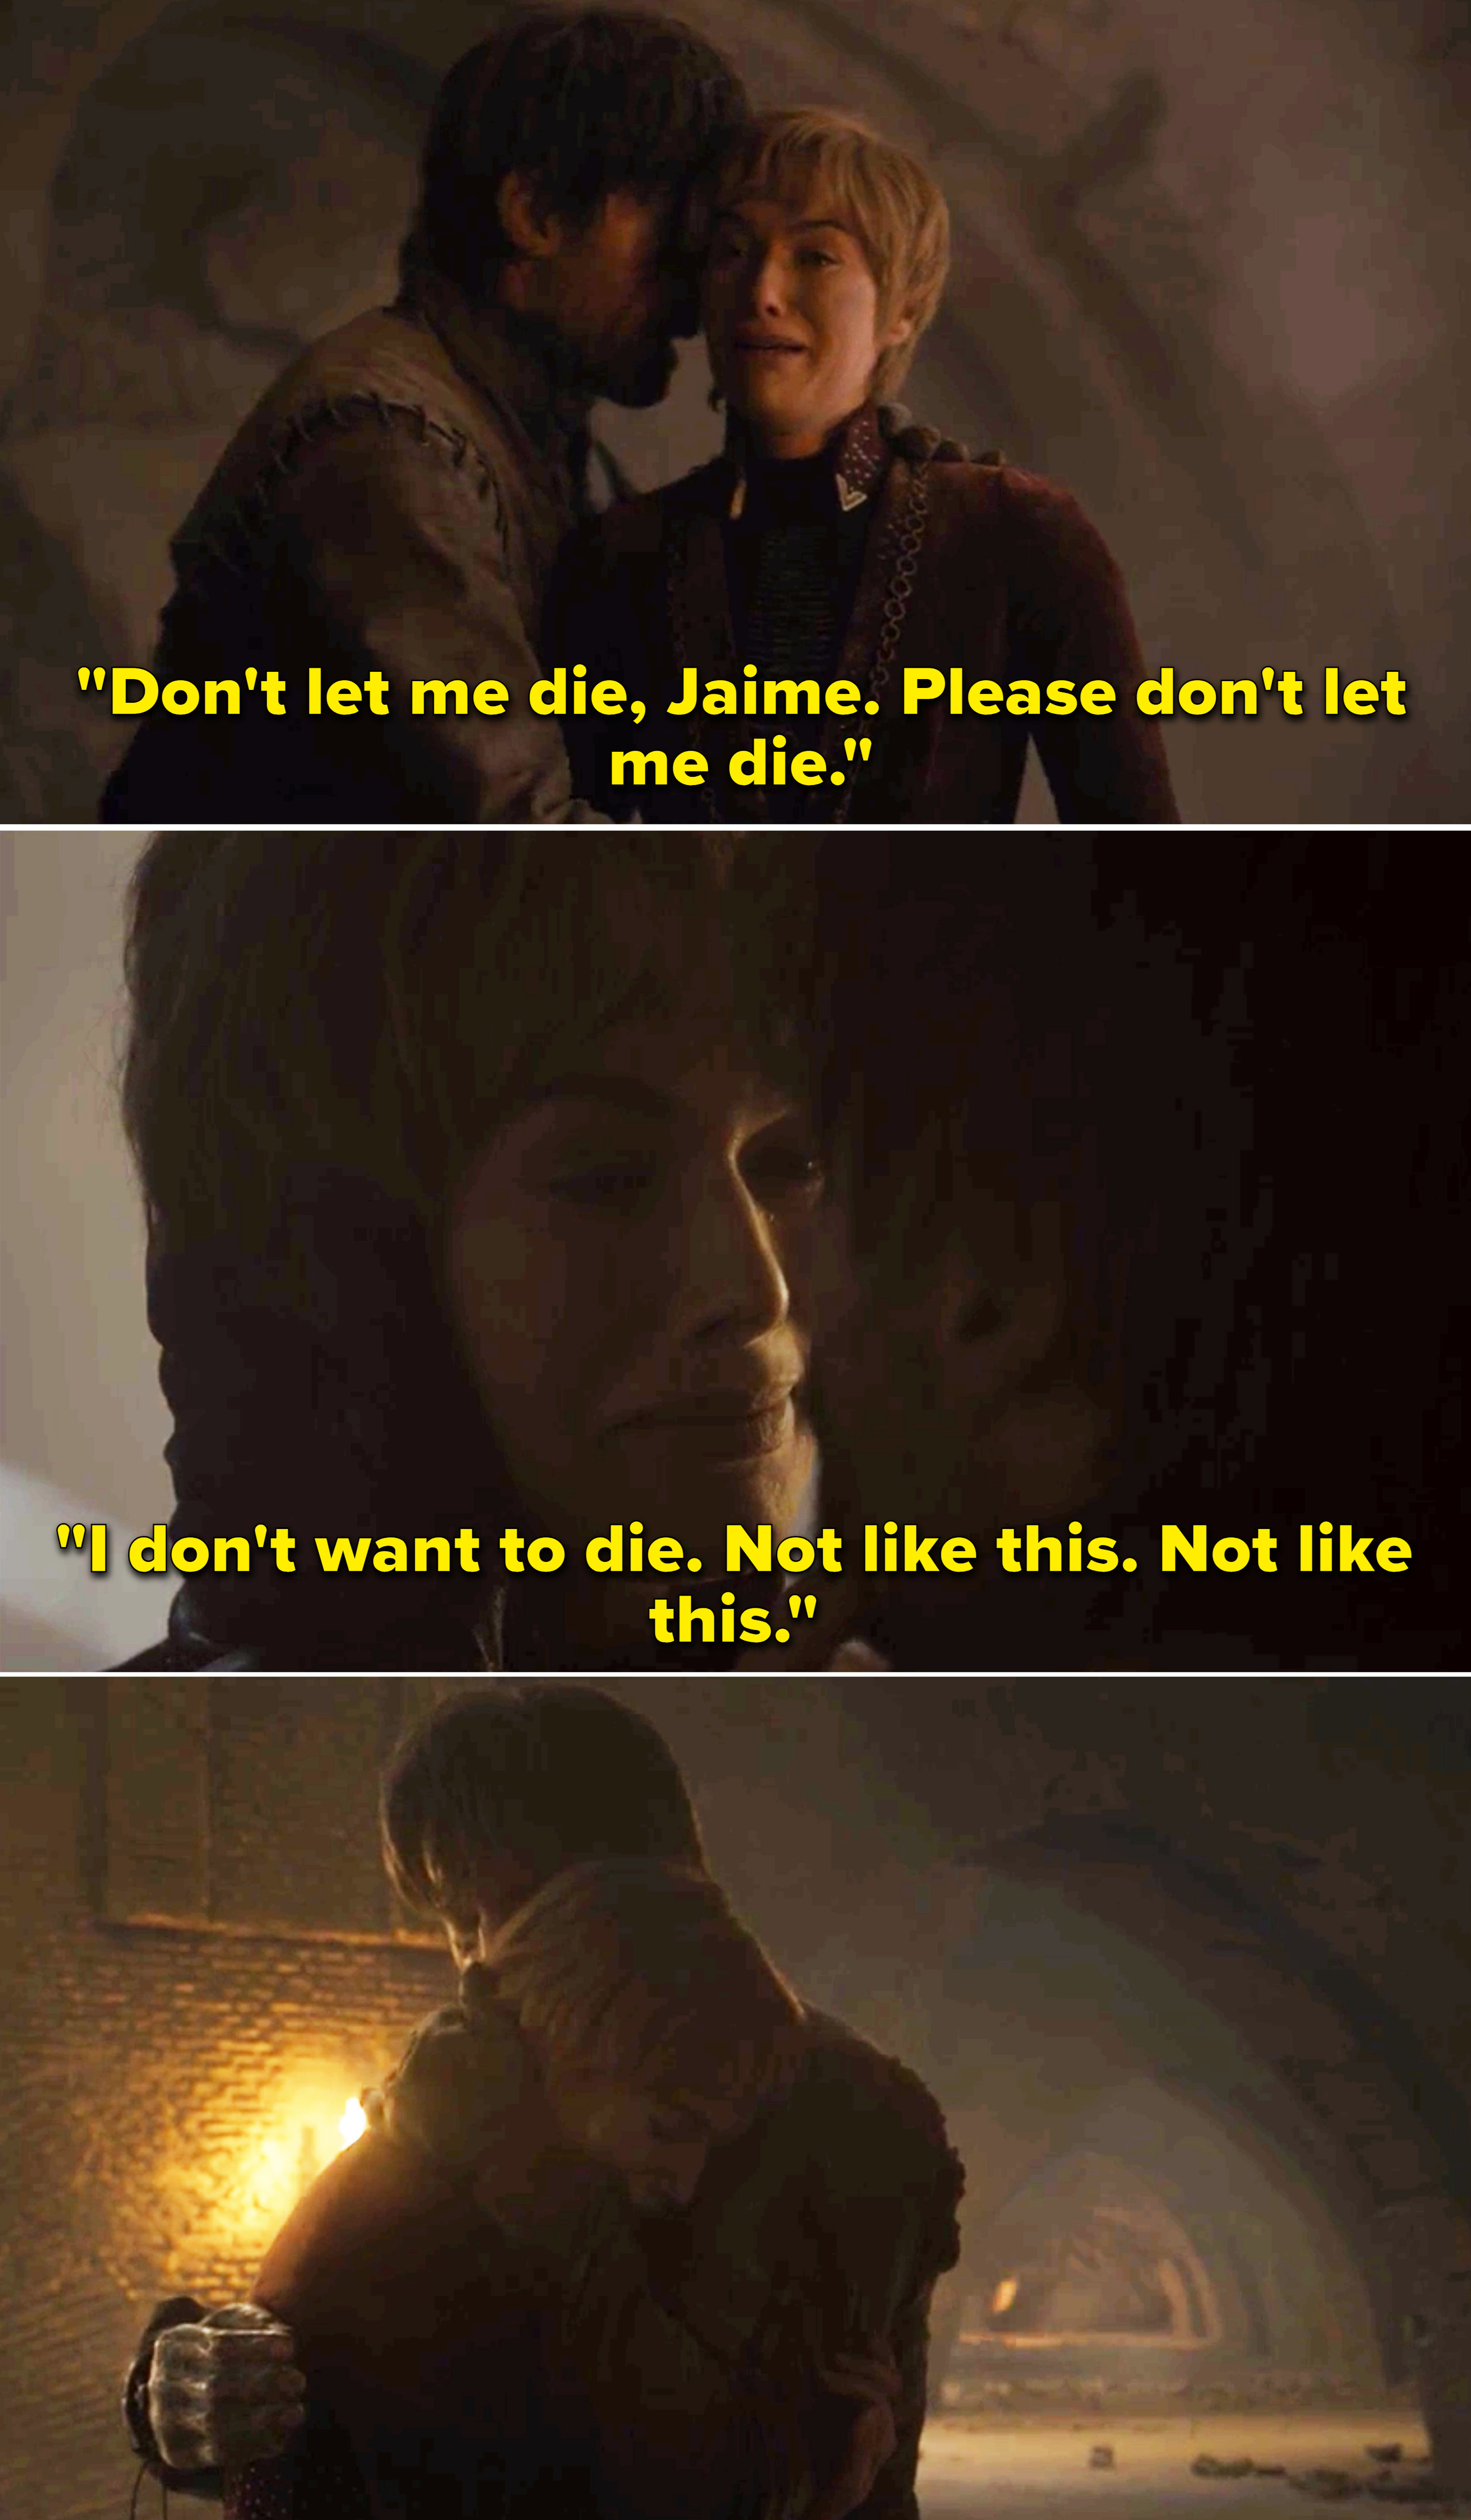 Cersei pleading with Jaime saying she doesn't want to die